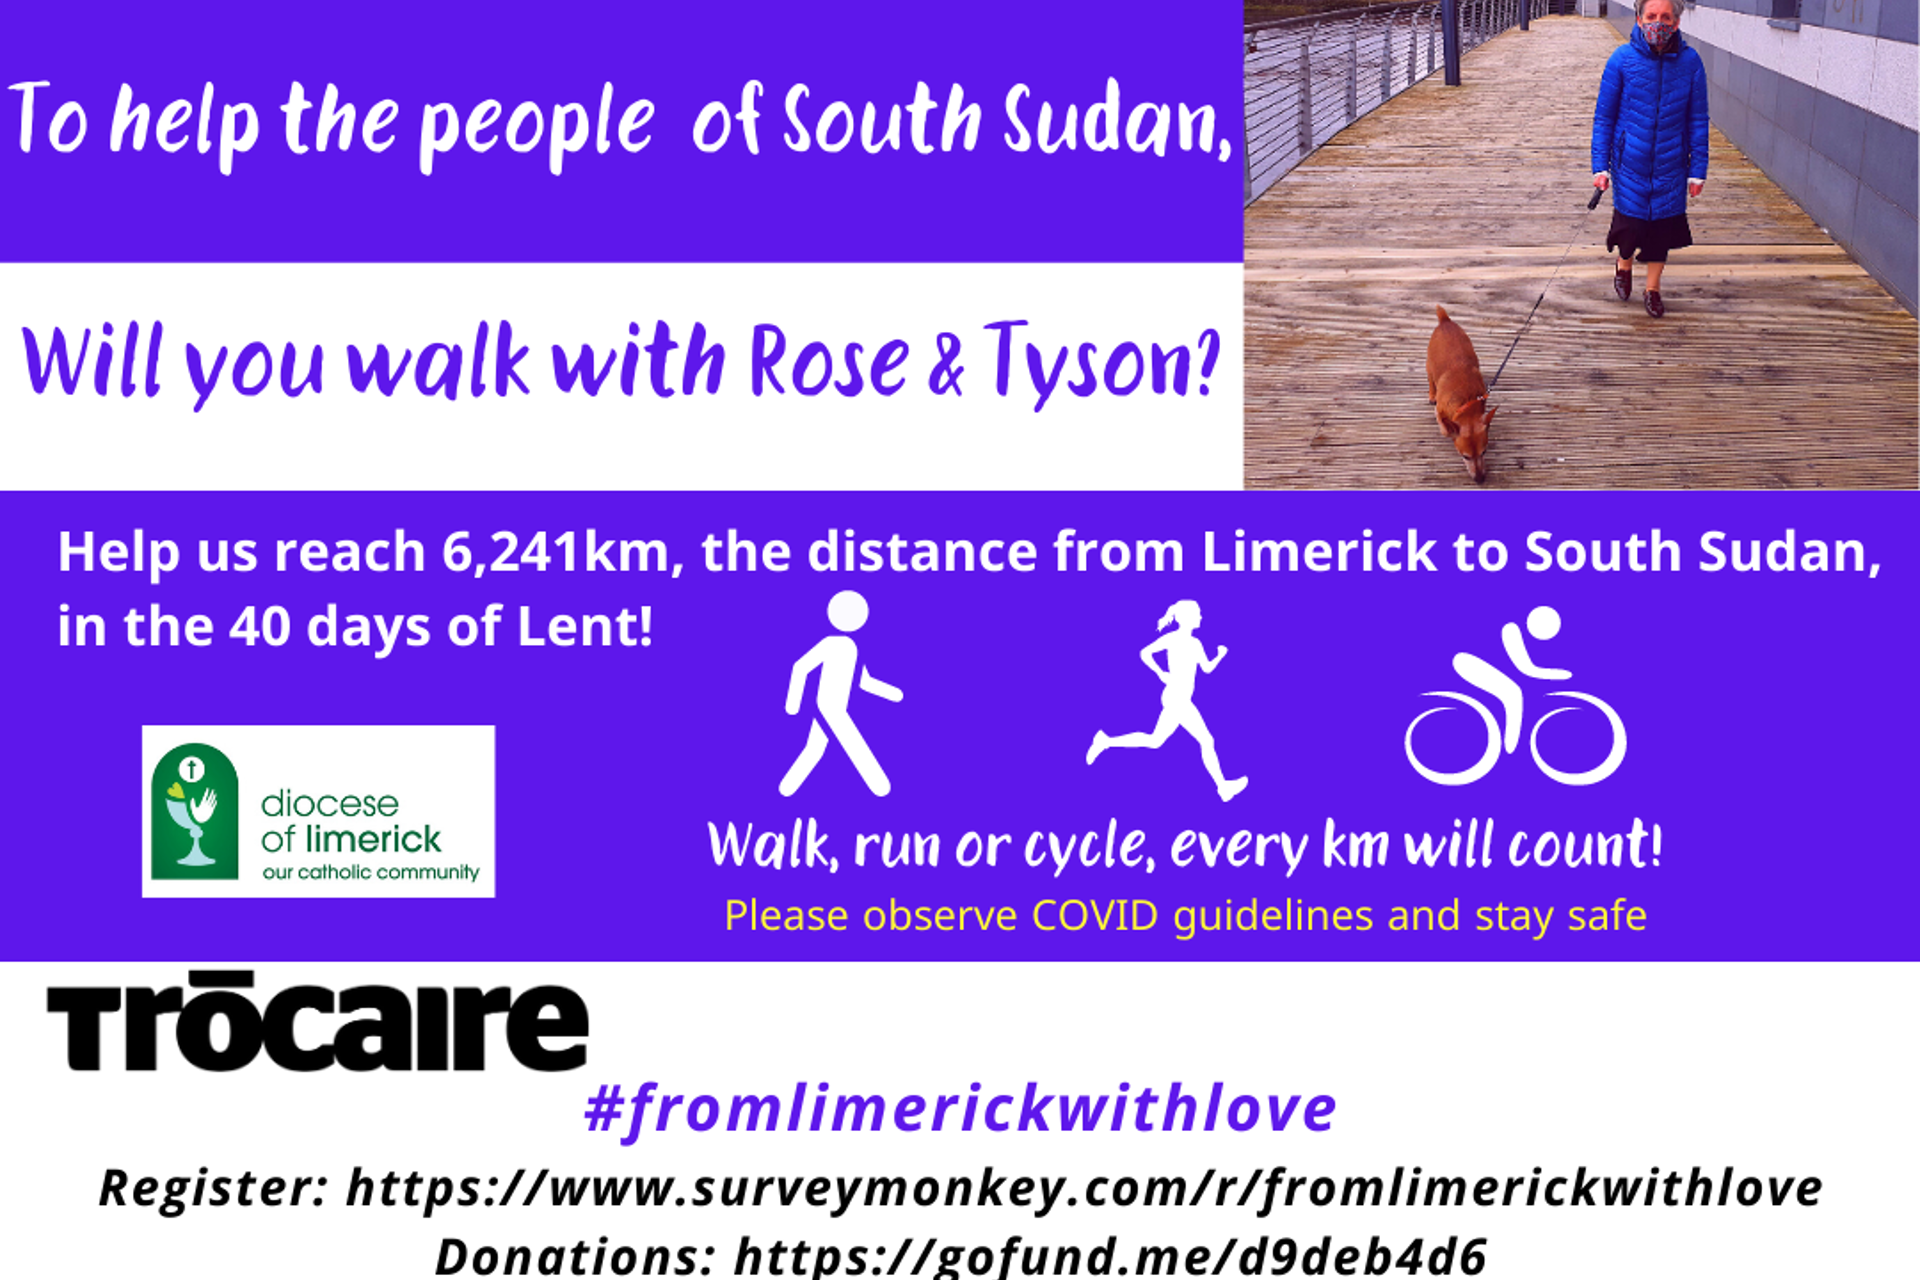 Will you walk with Rose & Tyson?